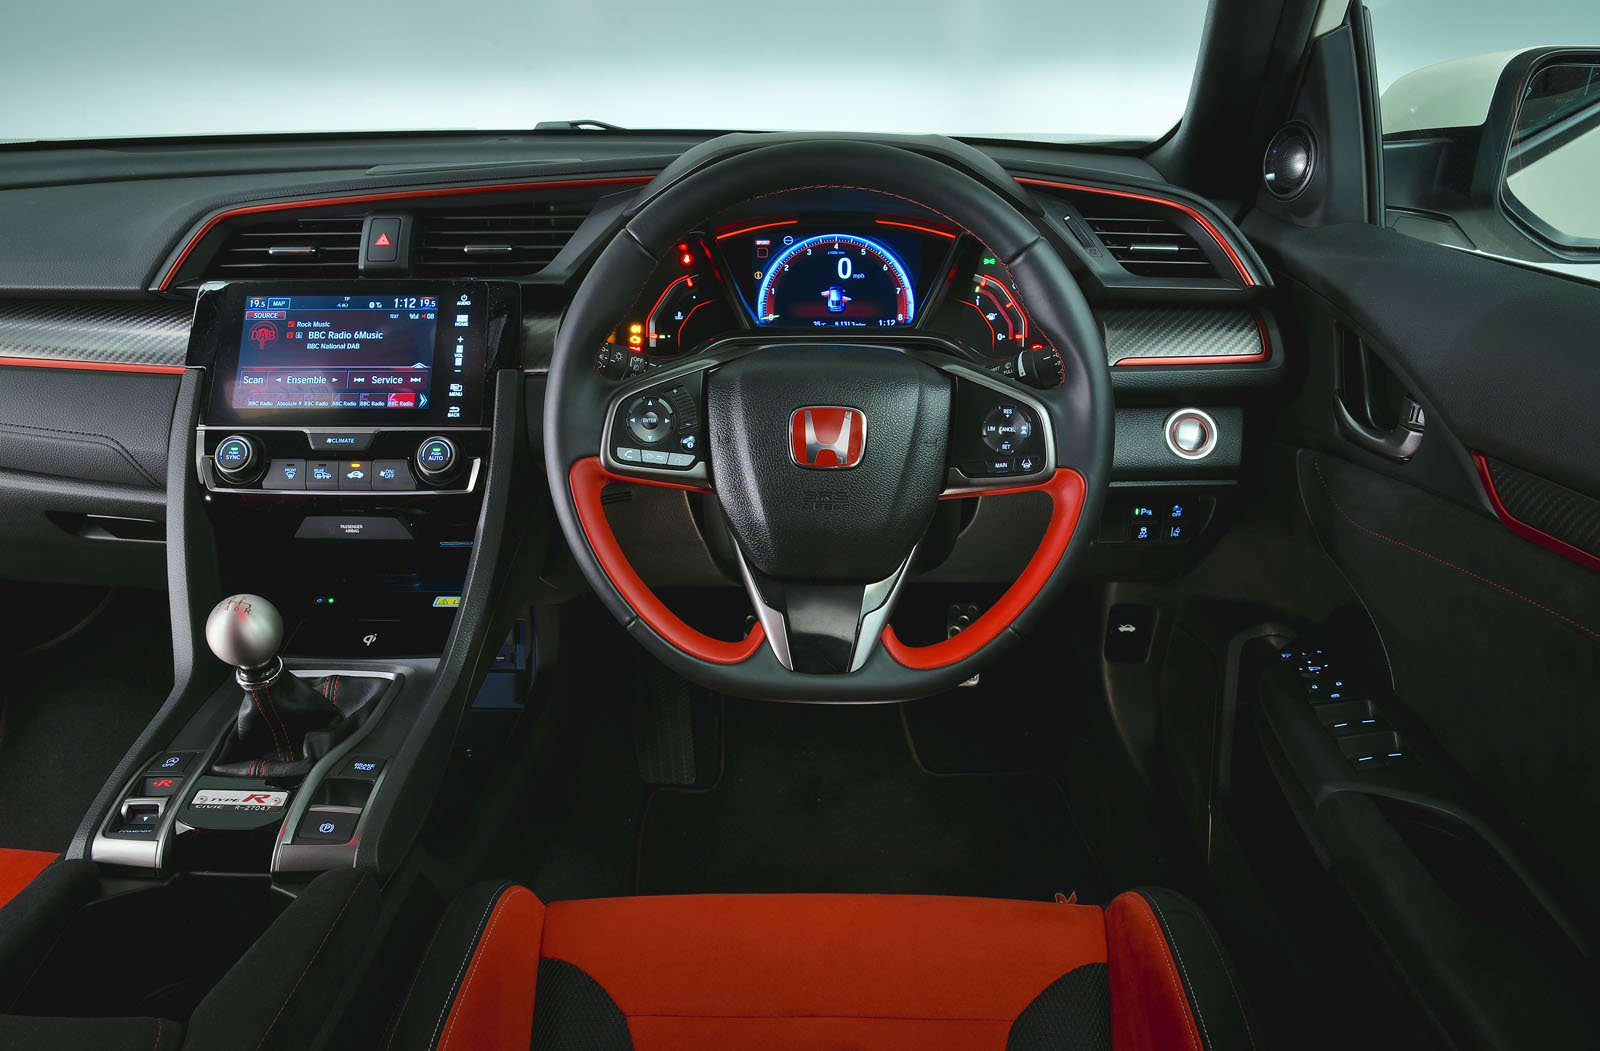 Honda Civic Type R 2019 RHD dashboard